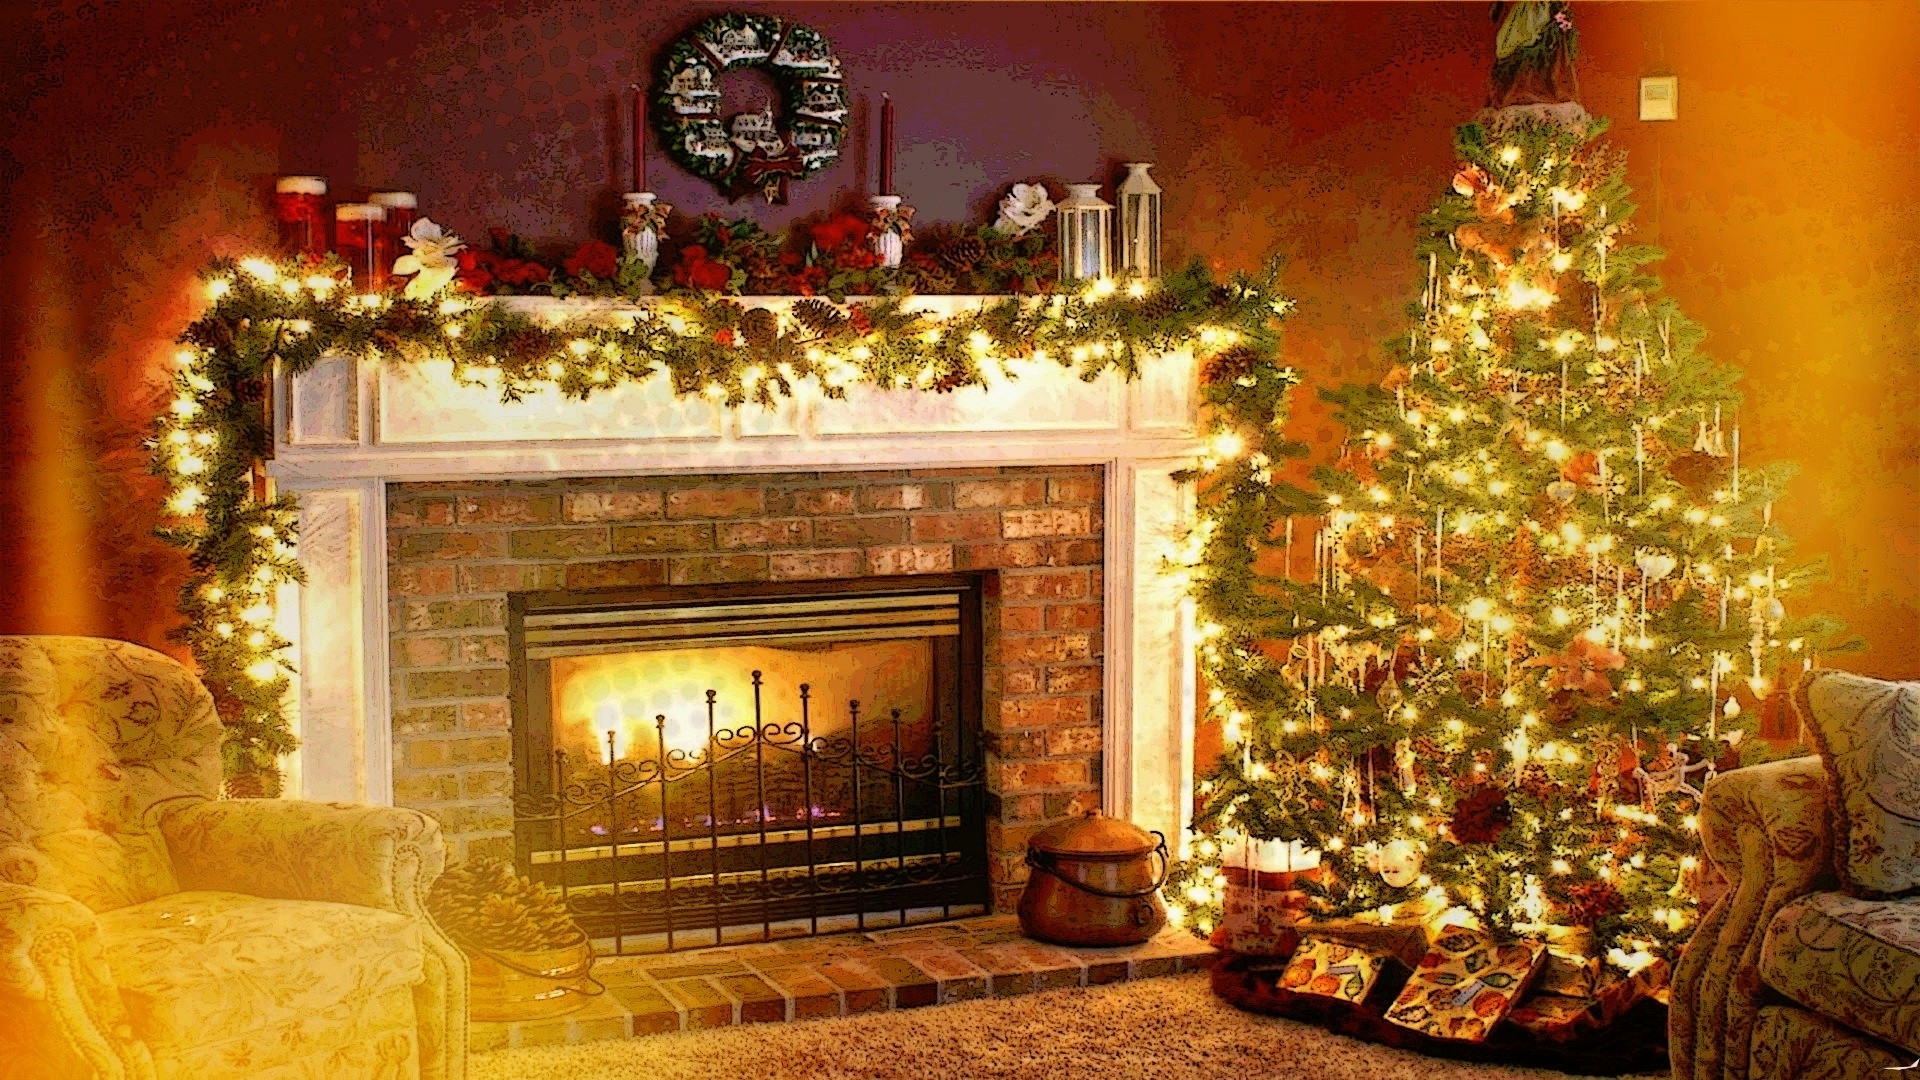 christmas, holiday, fireplace, interiors, welcome home wallpapers hd